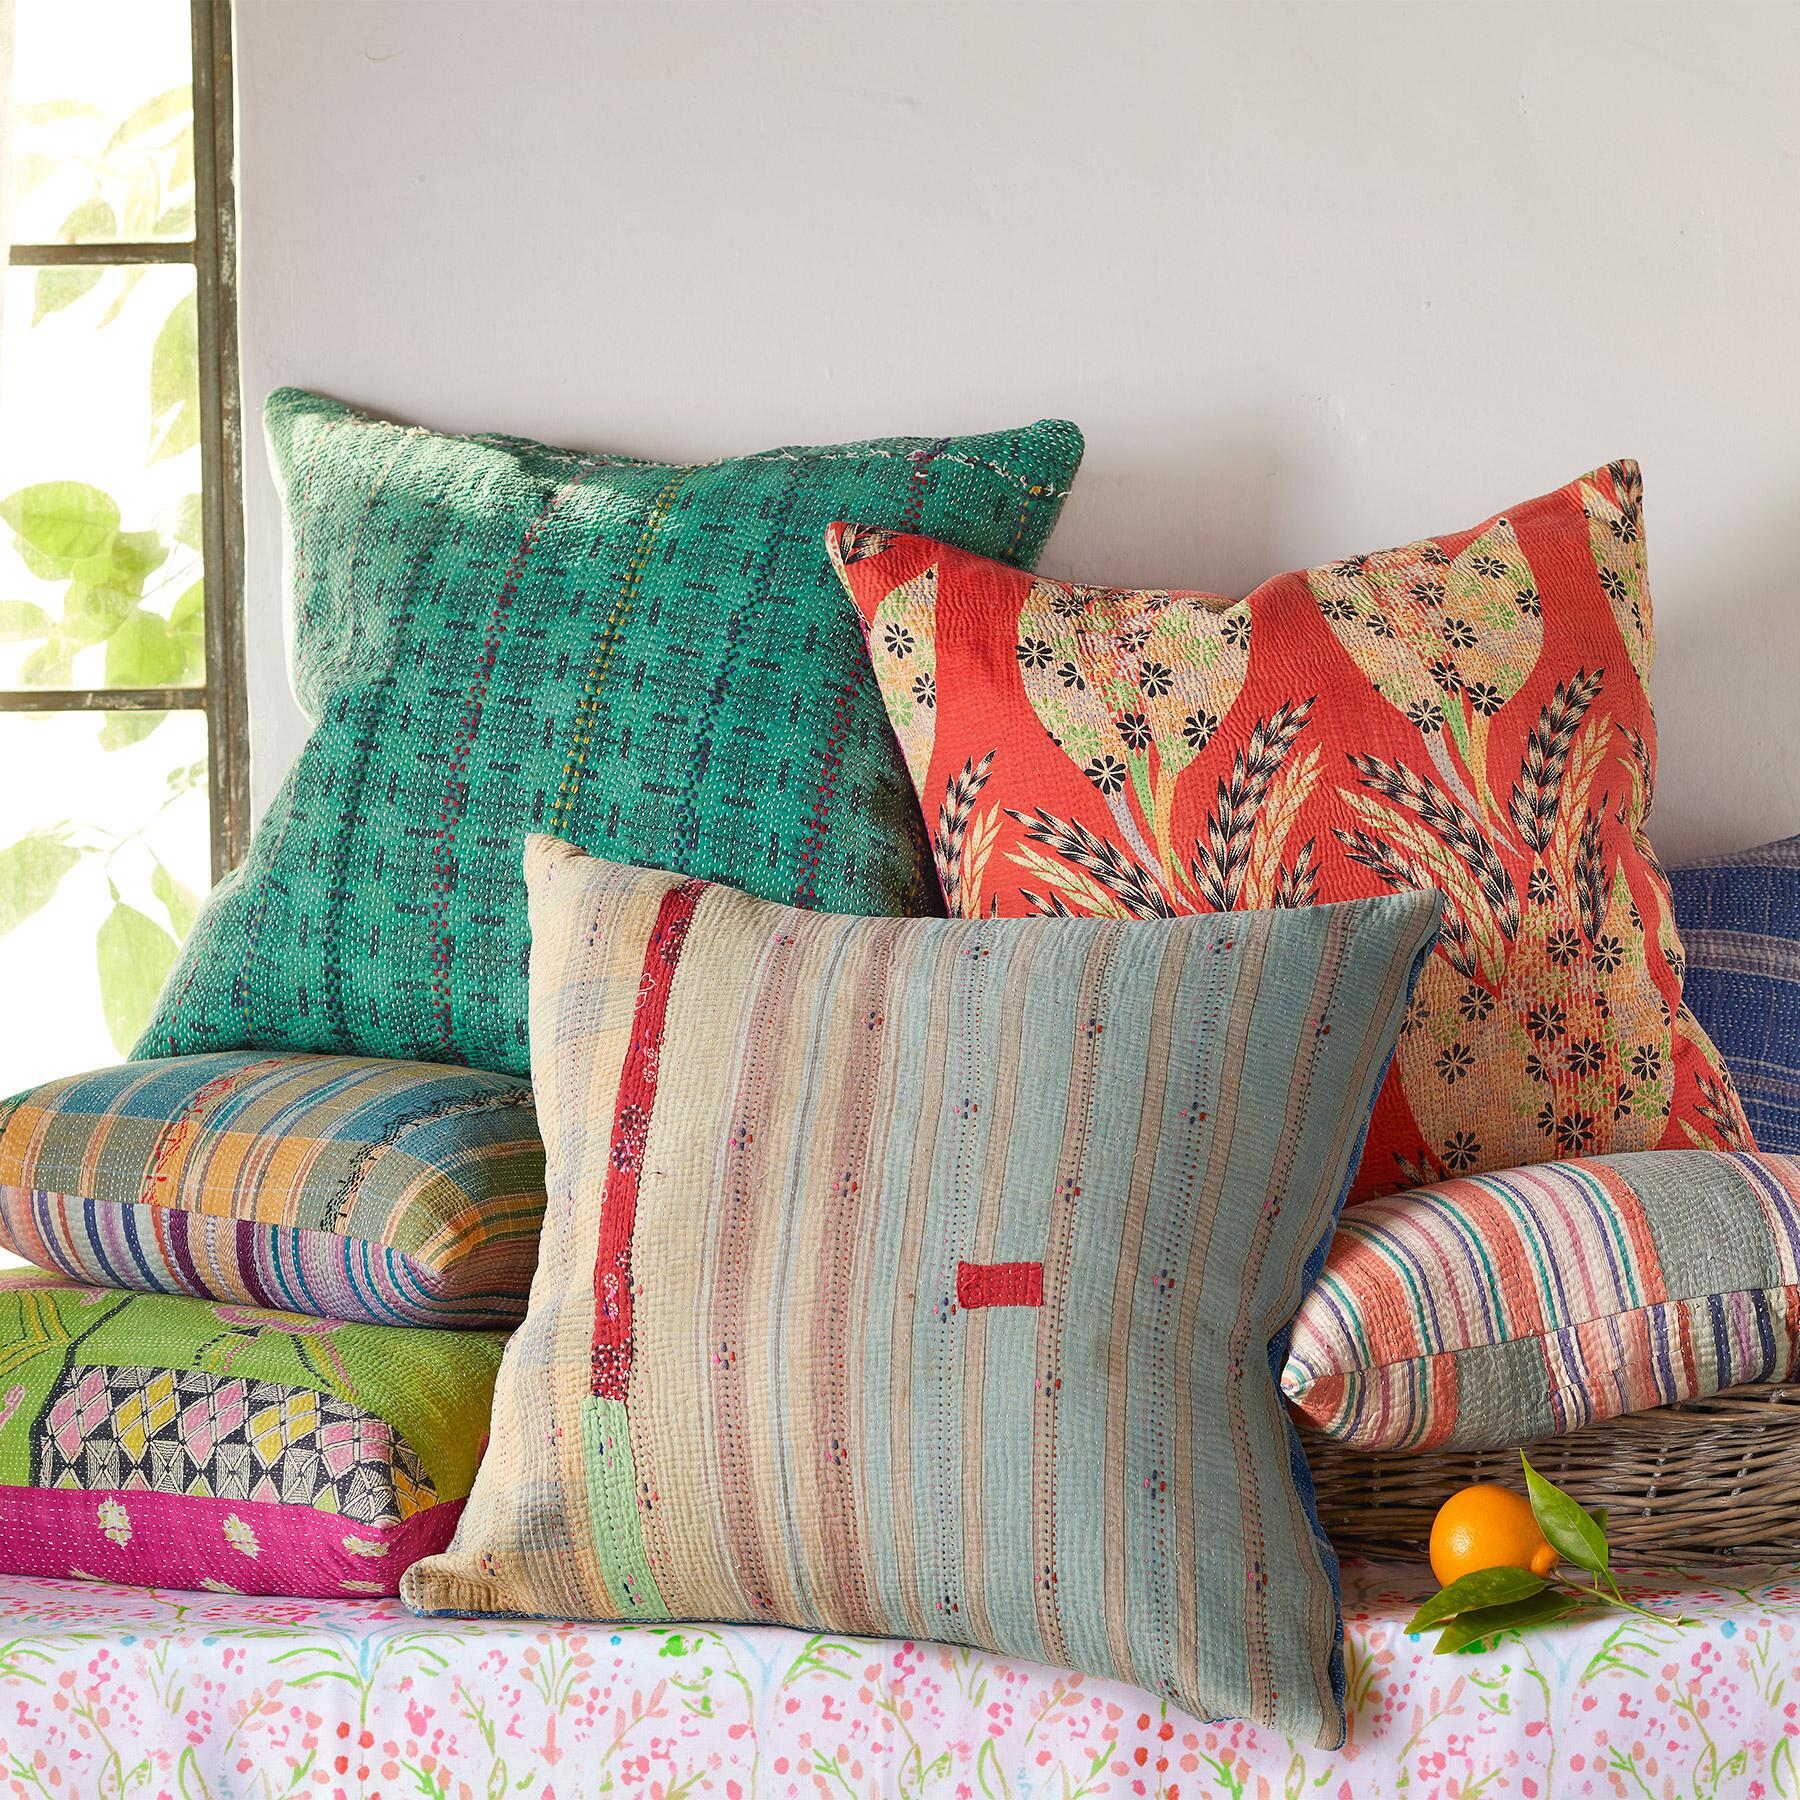 VINTAGE SARI PILLOWS: View 1